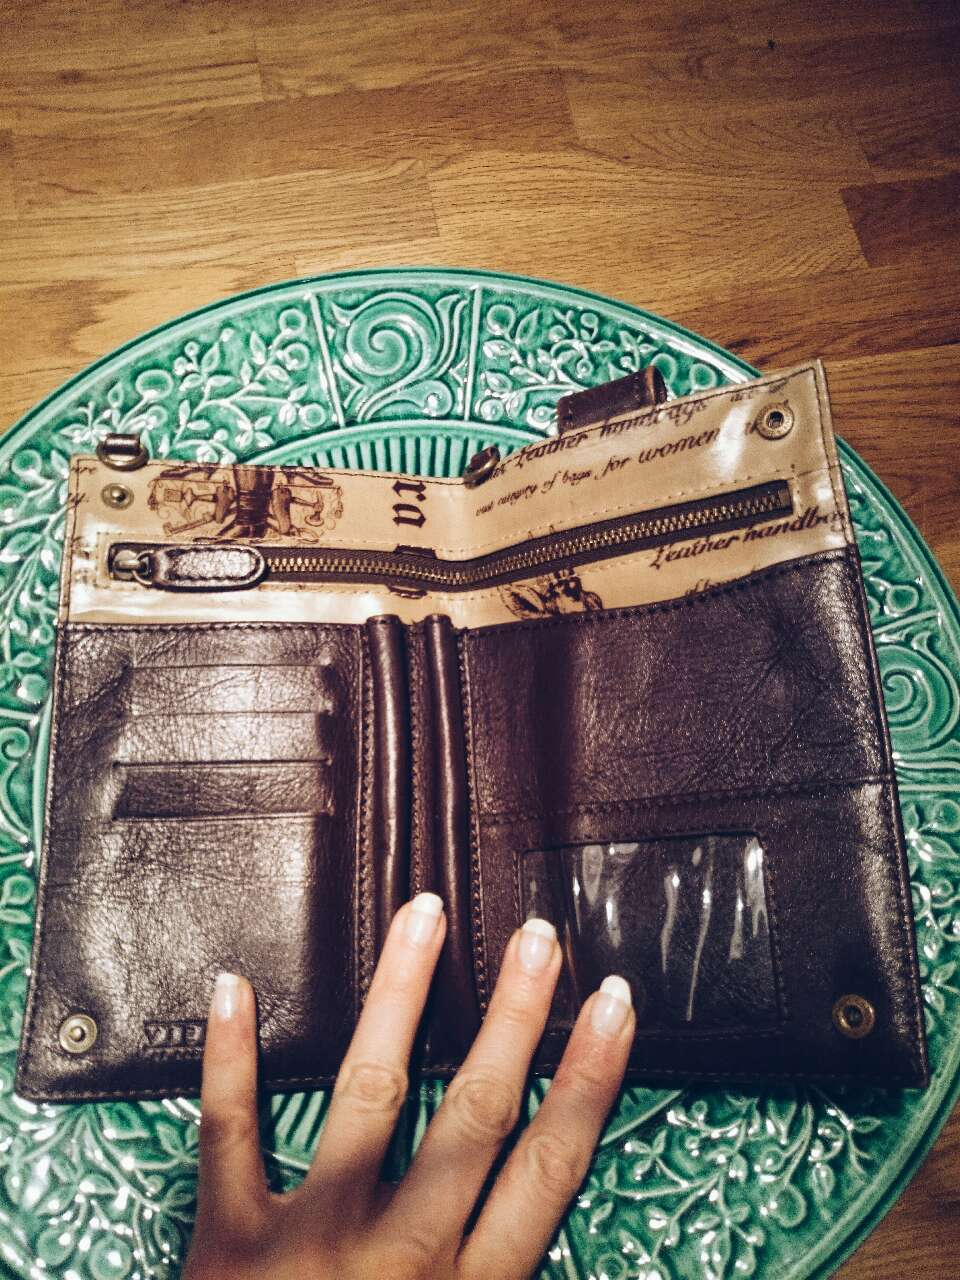 Leather Wallet / Viera By Ragazze